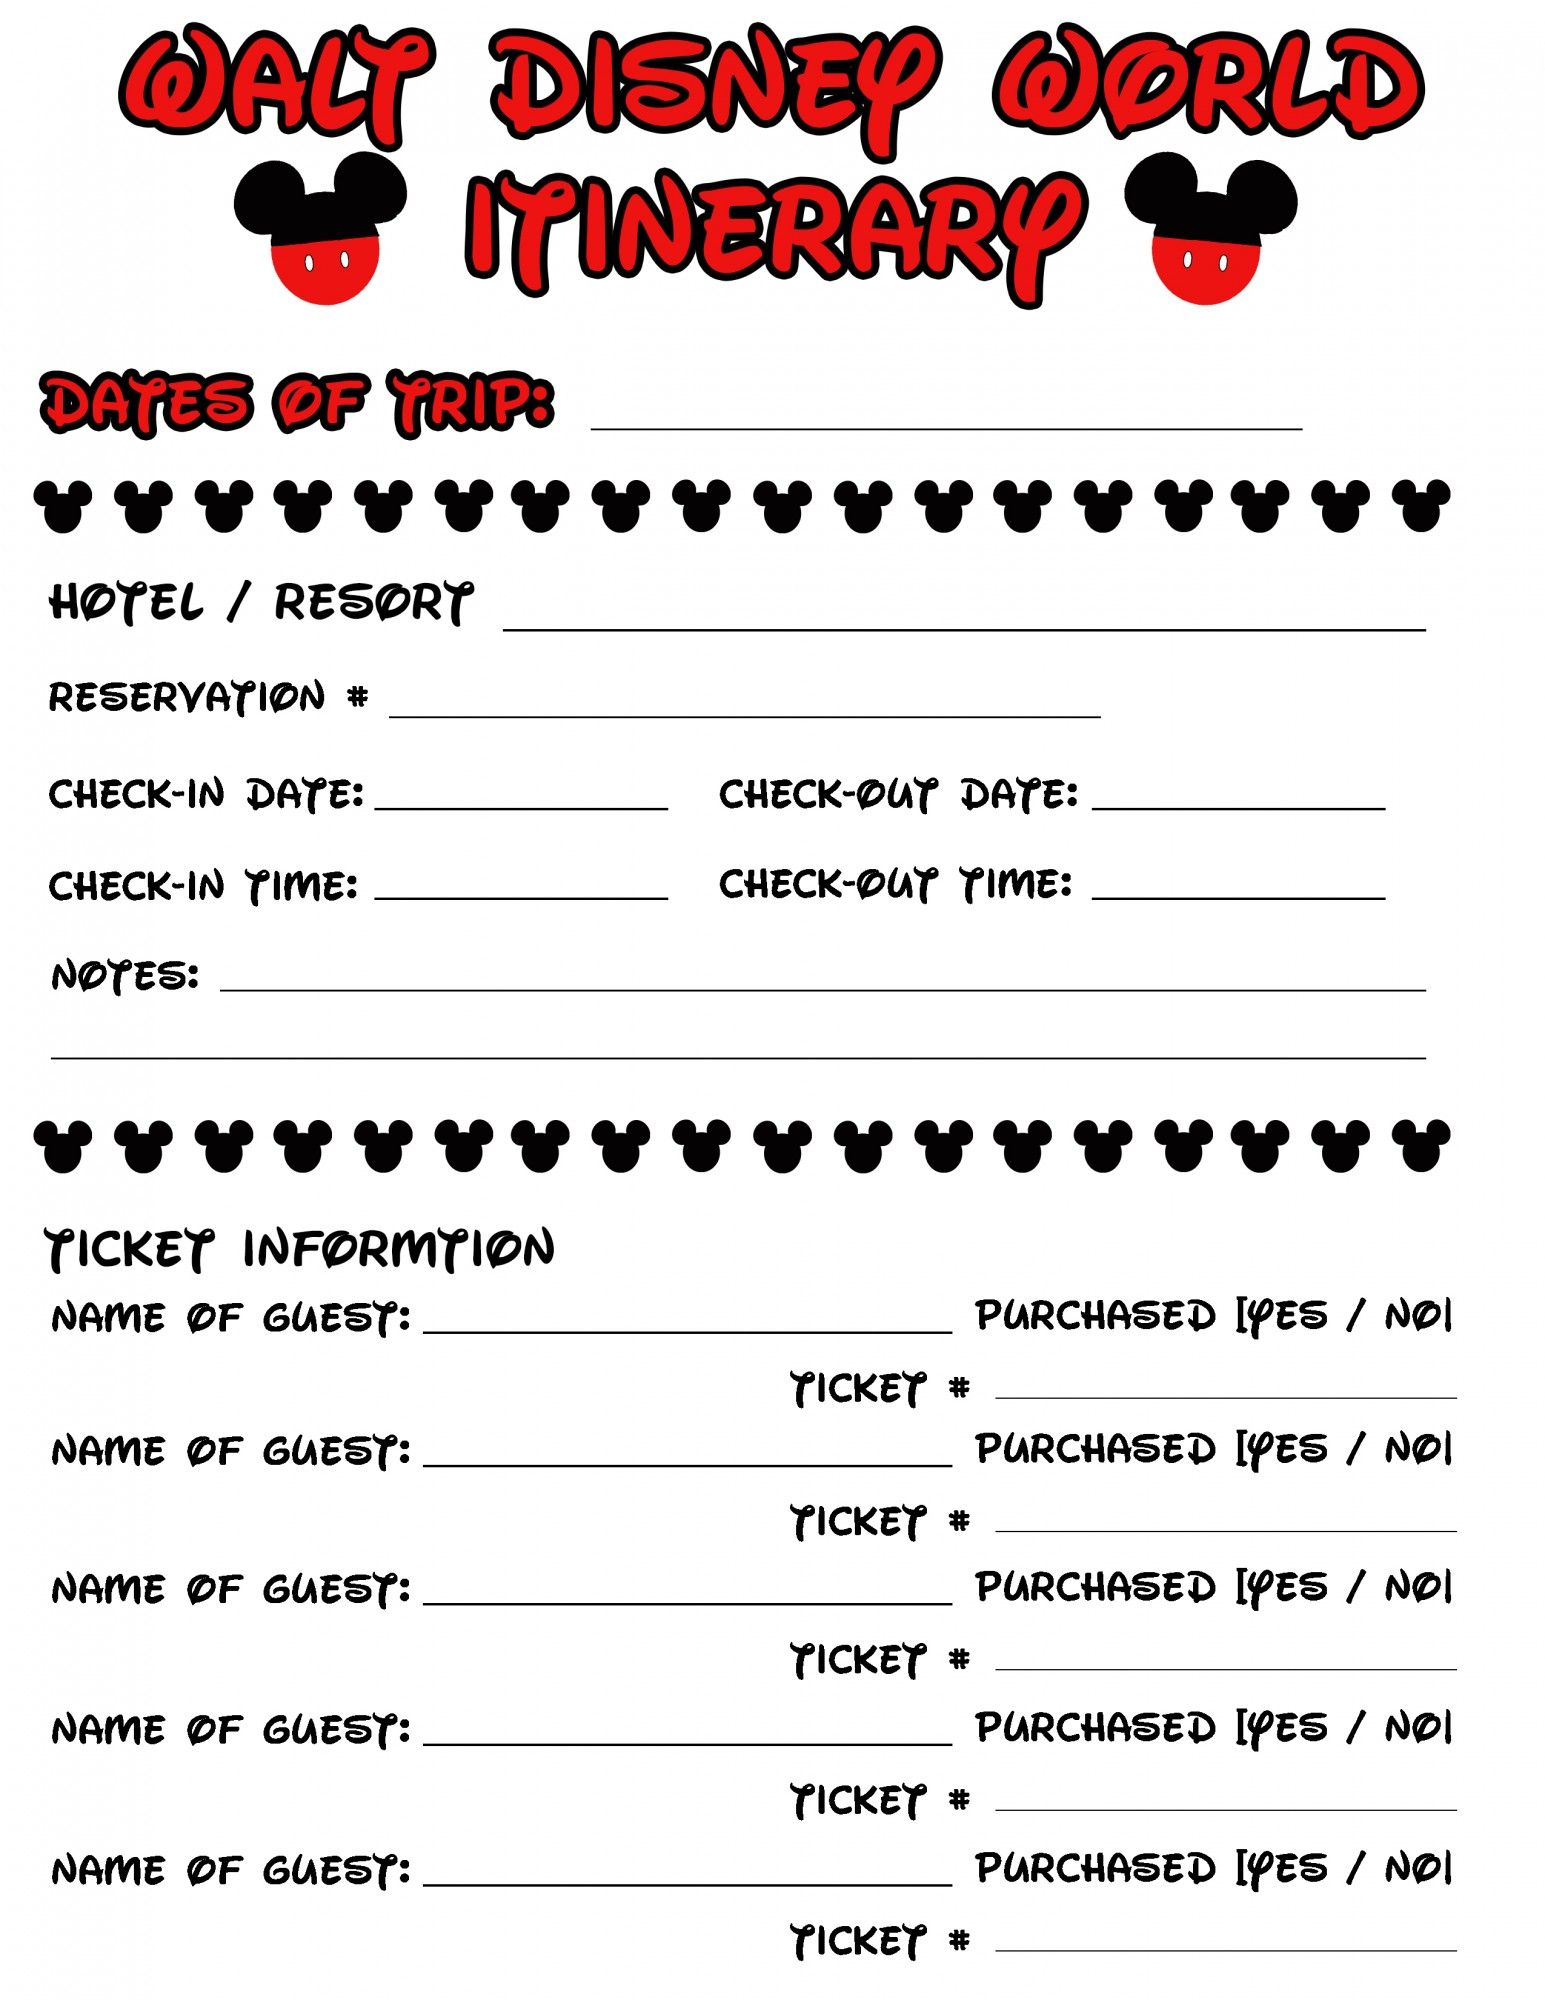 Disney Agenda & Itinerary Free Printable | Disney Vacations